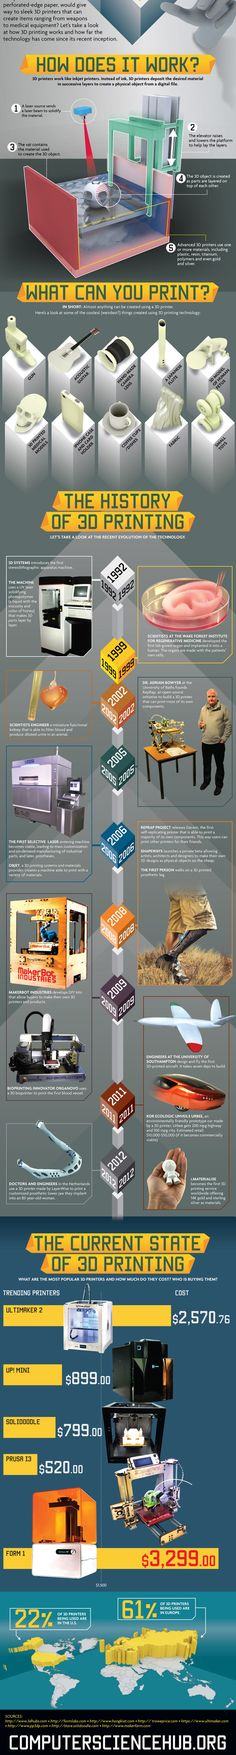 Hoe het werkt: 3d Printing in Medicine: The Future is Now (Infographic) http://www.youtube.com/watch?v=S-E6vRfnijw